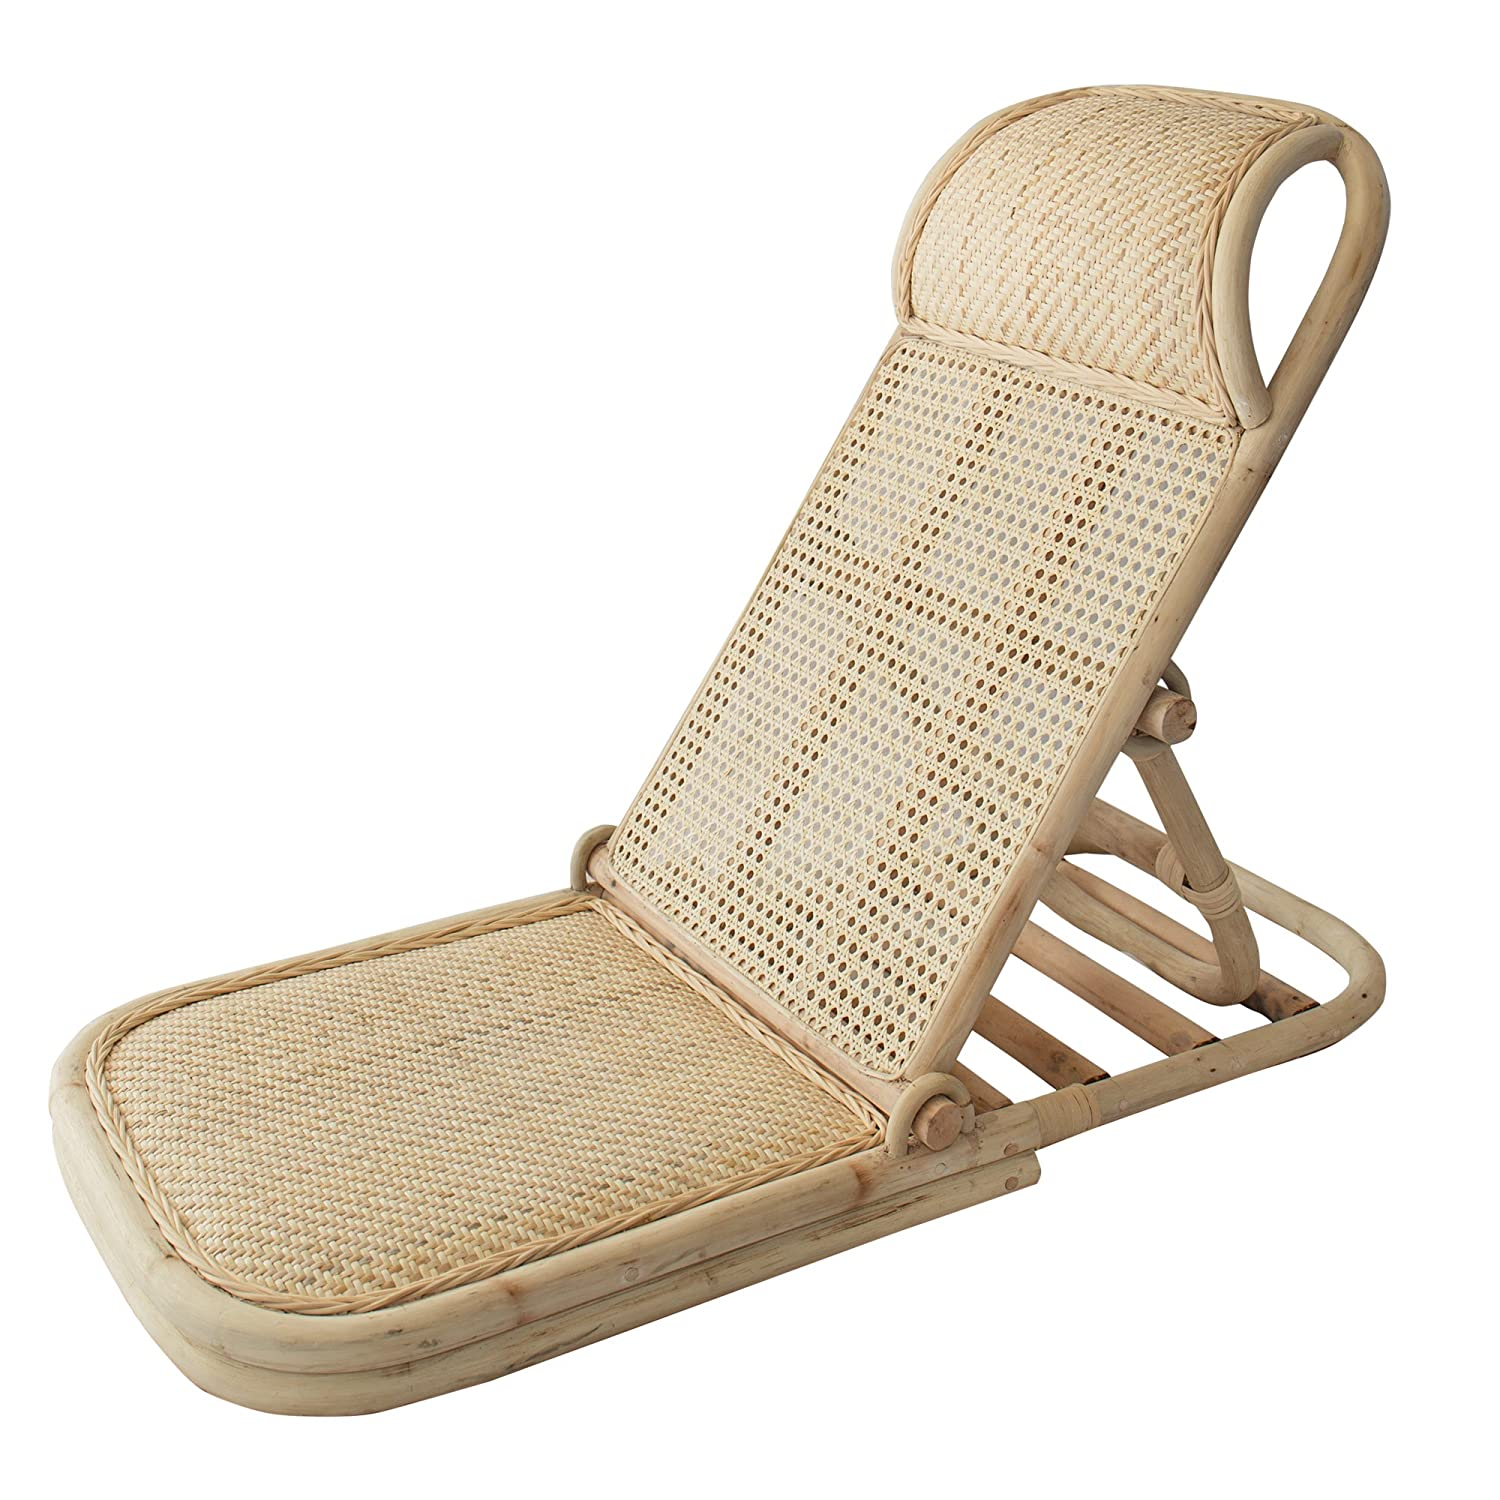 Amazon com wild in bloom folding beach chair beach chair rattan lawn chair floor chair wood chair pool lounger portable wicker beach kitchen